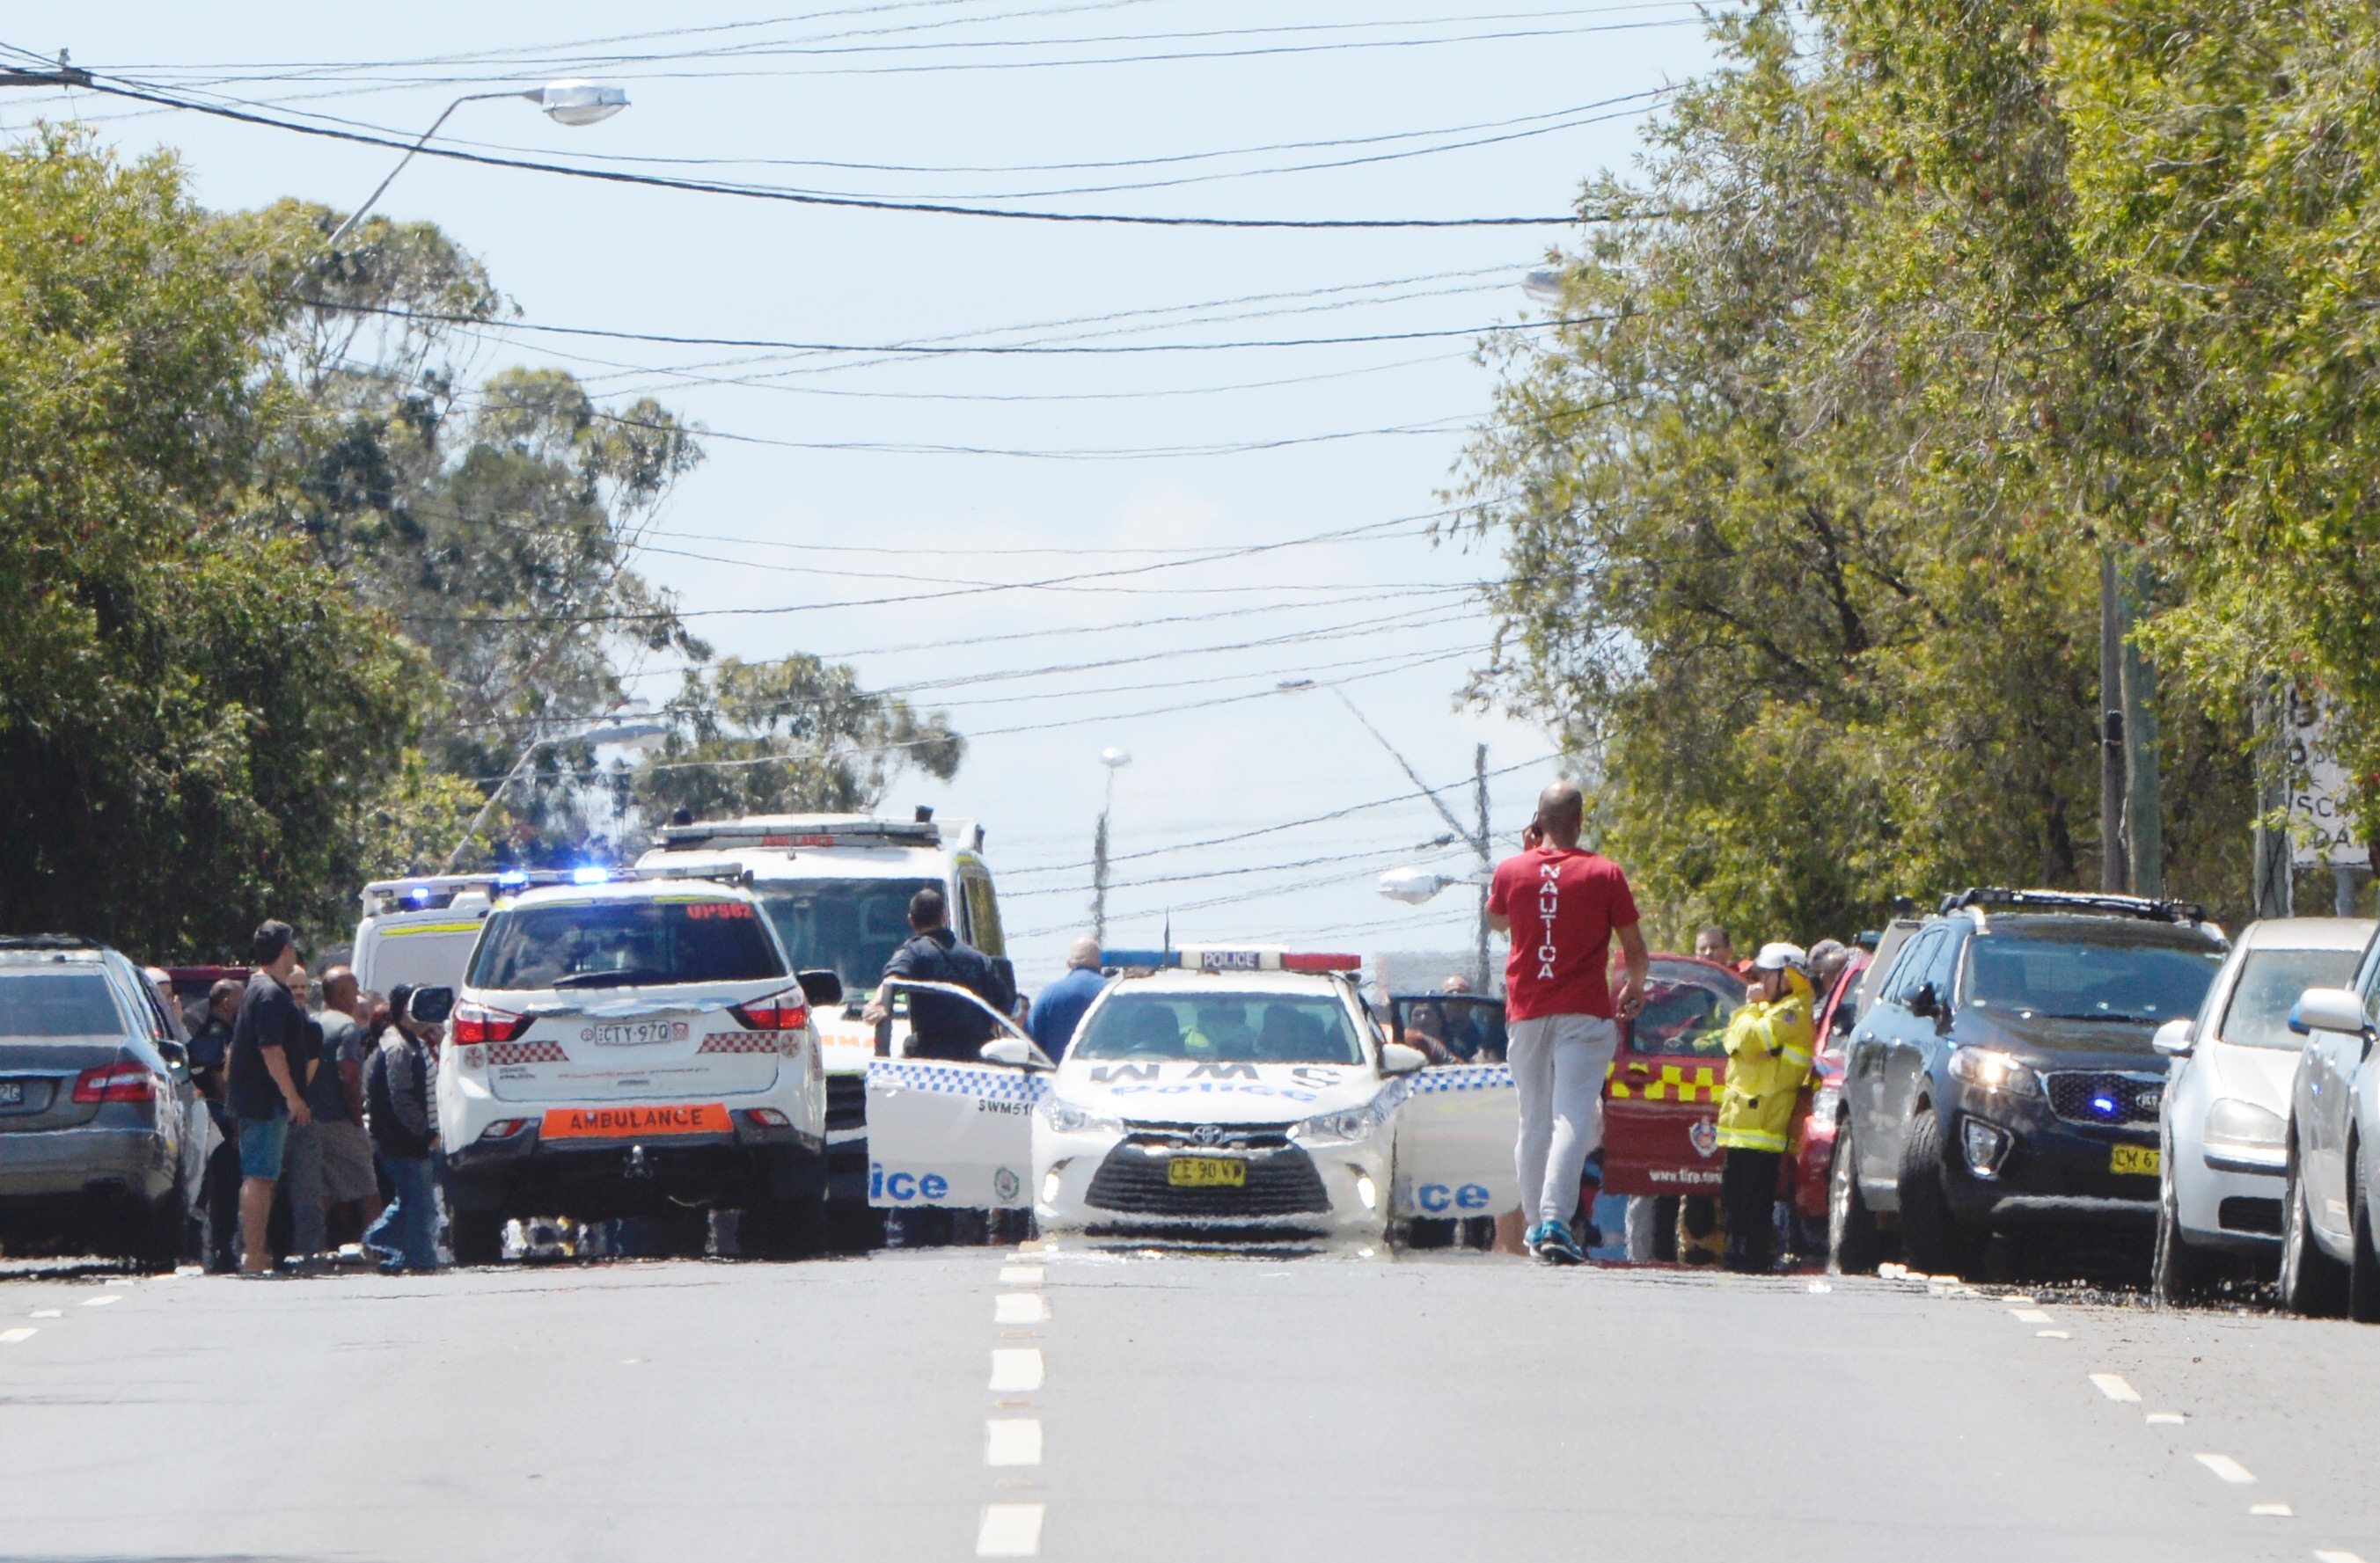 Scenes from Boronia St Public school as parents run to get their kids. Pic Nick Moir 7 nov